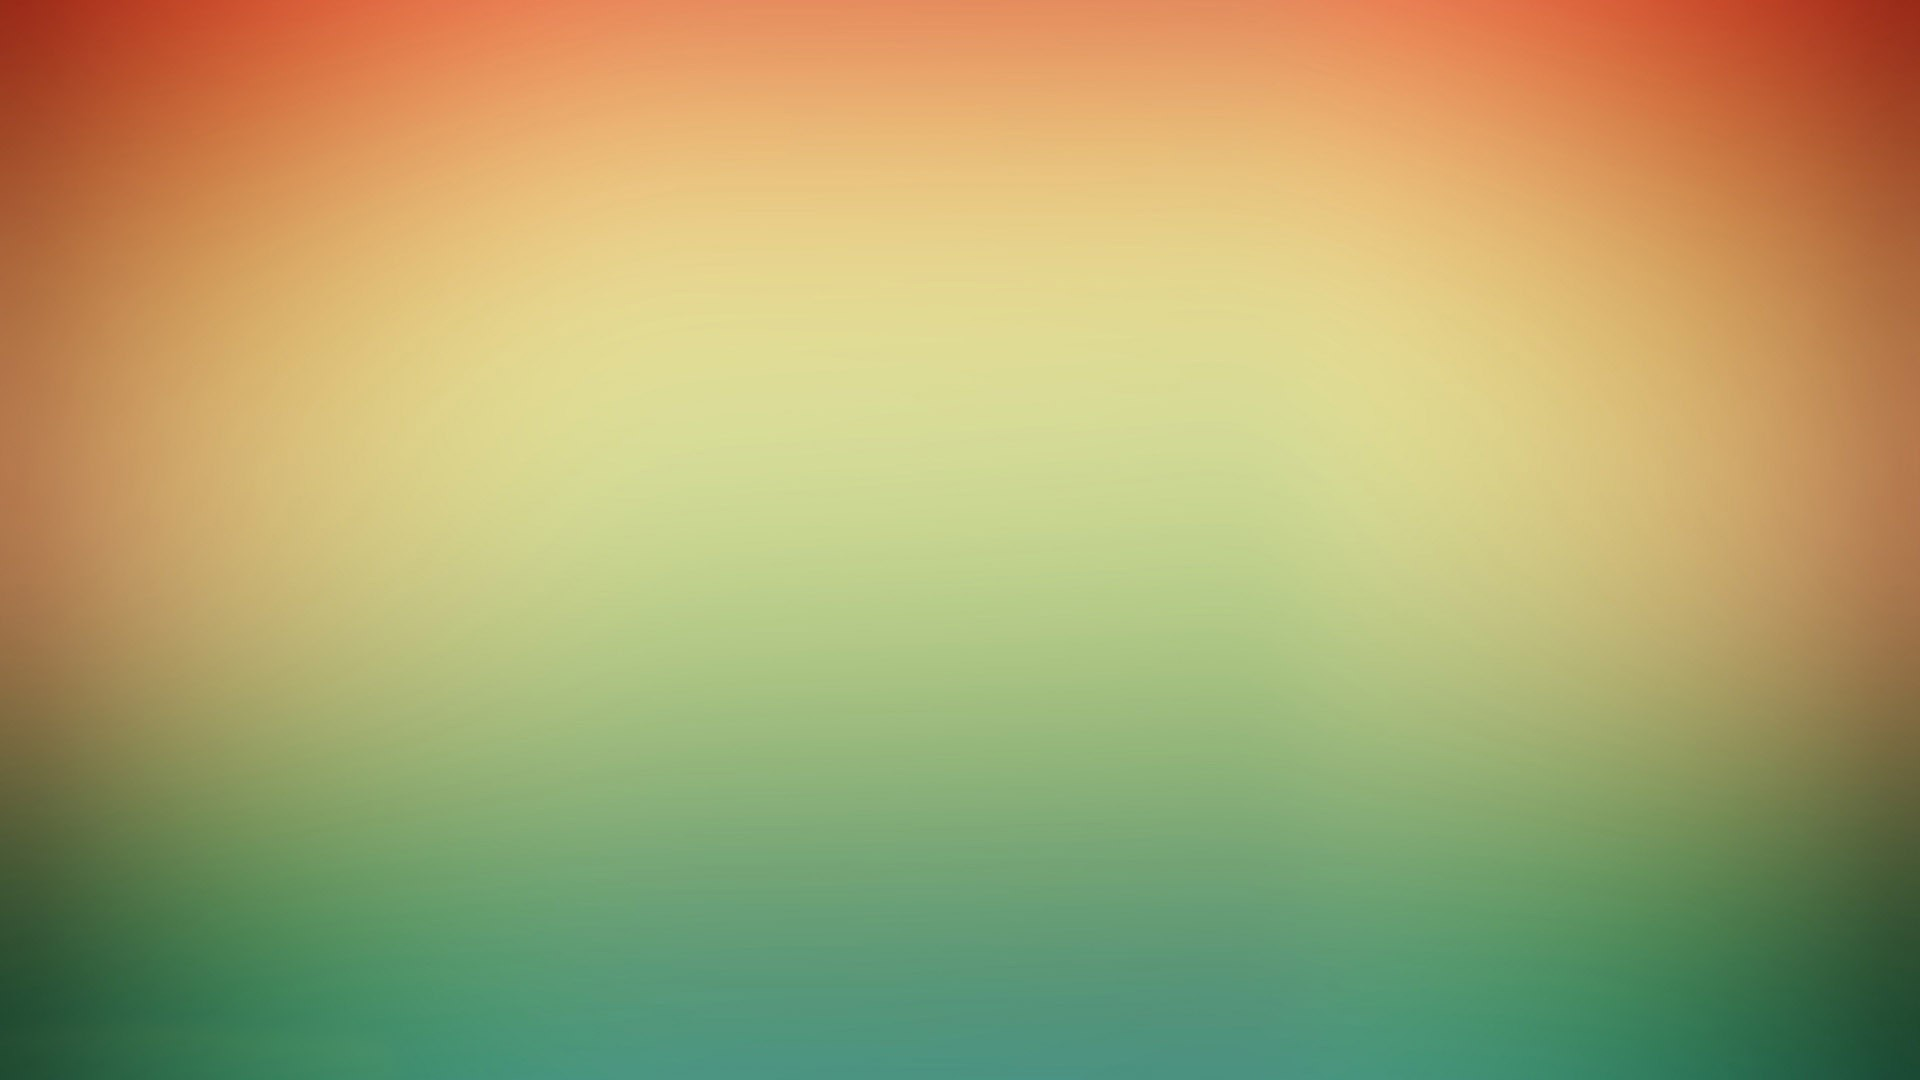 Green Gradient Wallpapers Posted By Michelle Peltier